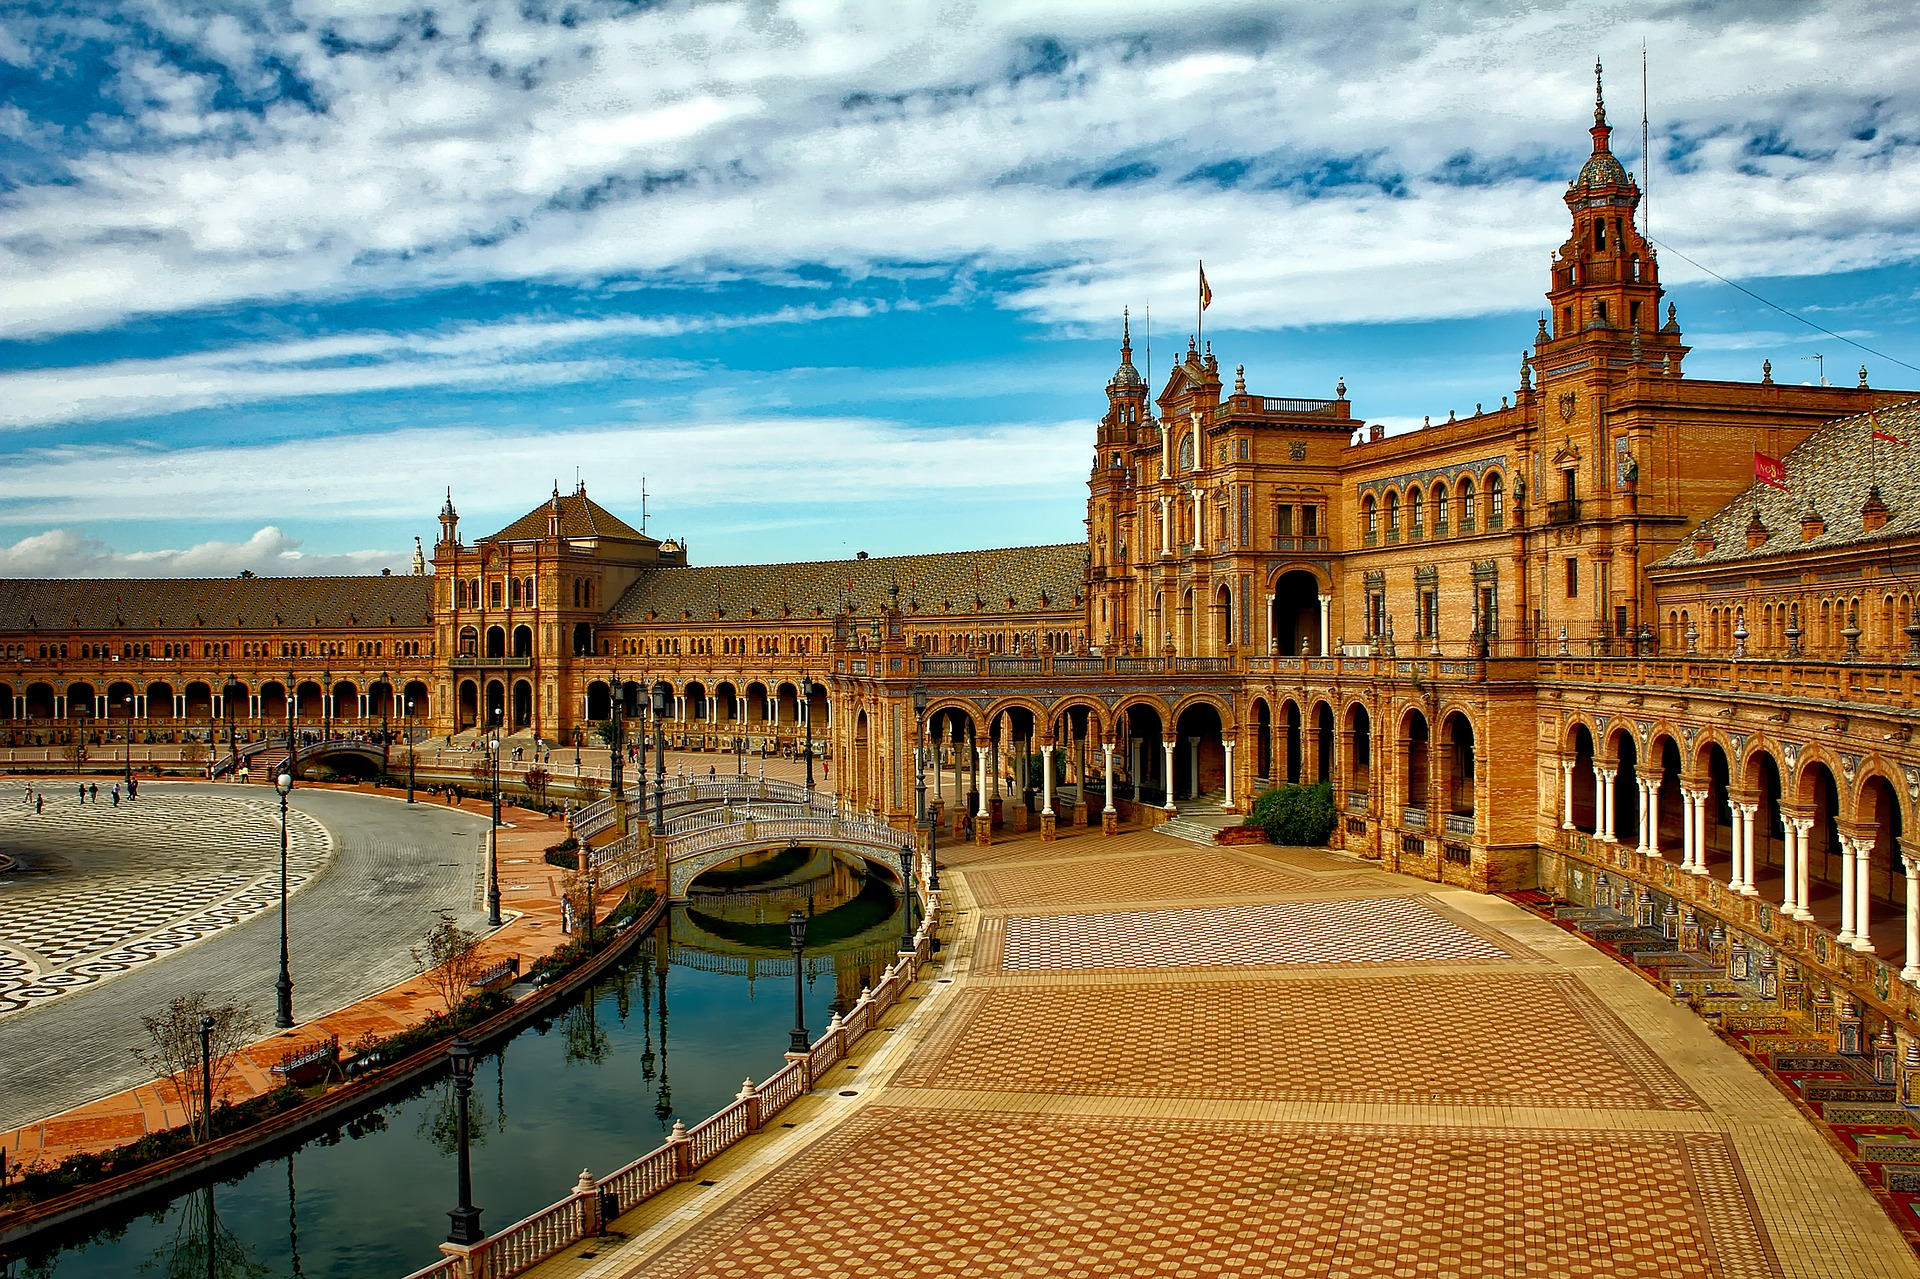 The Plaza de España, in Seville, Spain